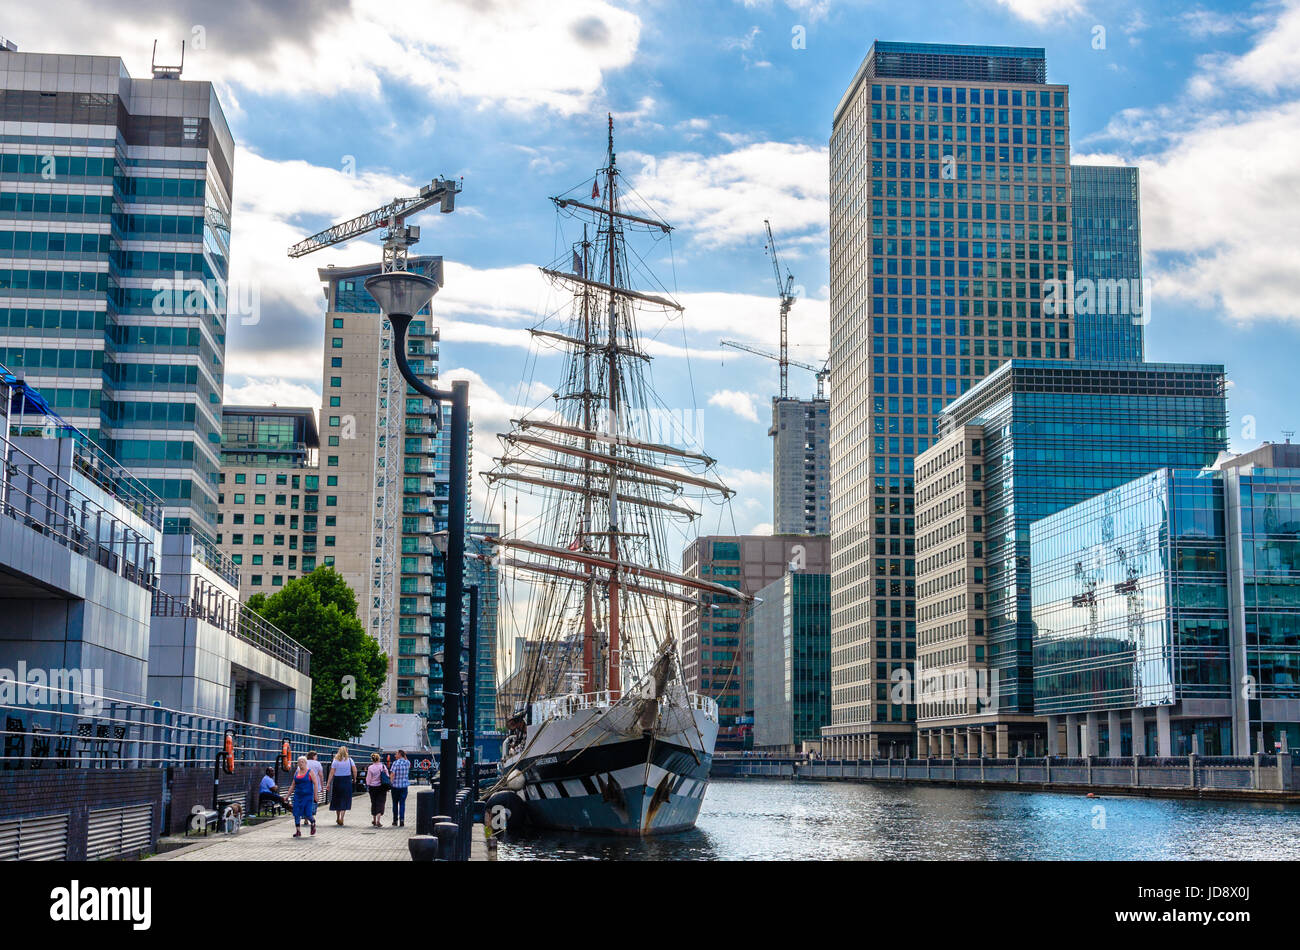 Stavros S Niarchos at South Quay in Canary Wharf, London - Stock Image